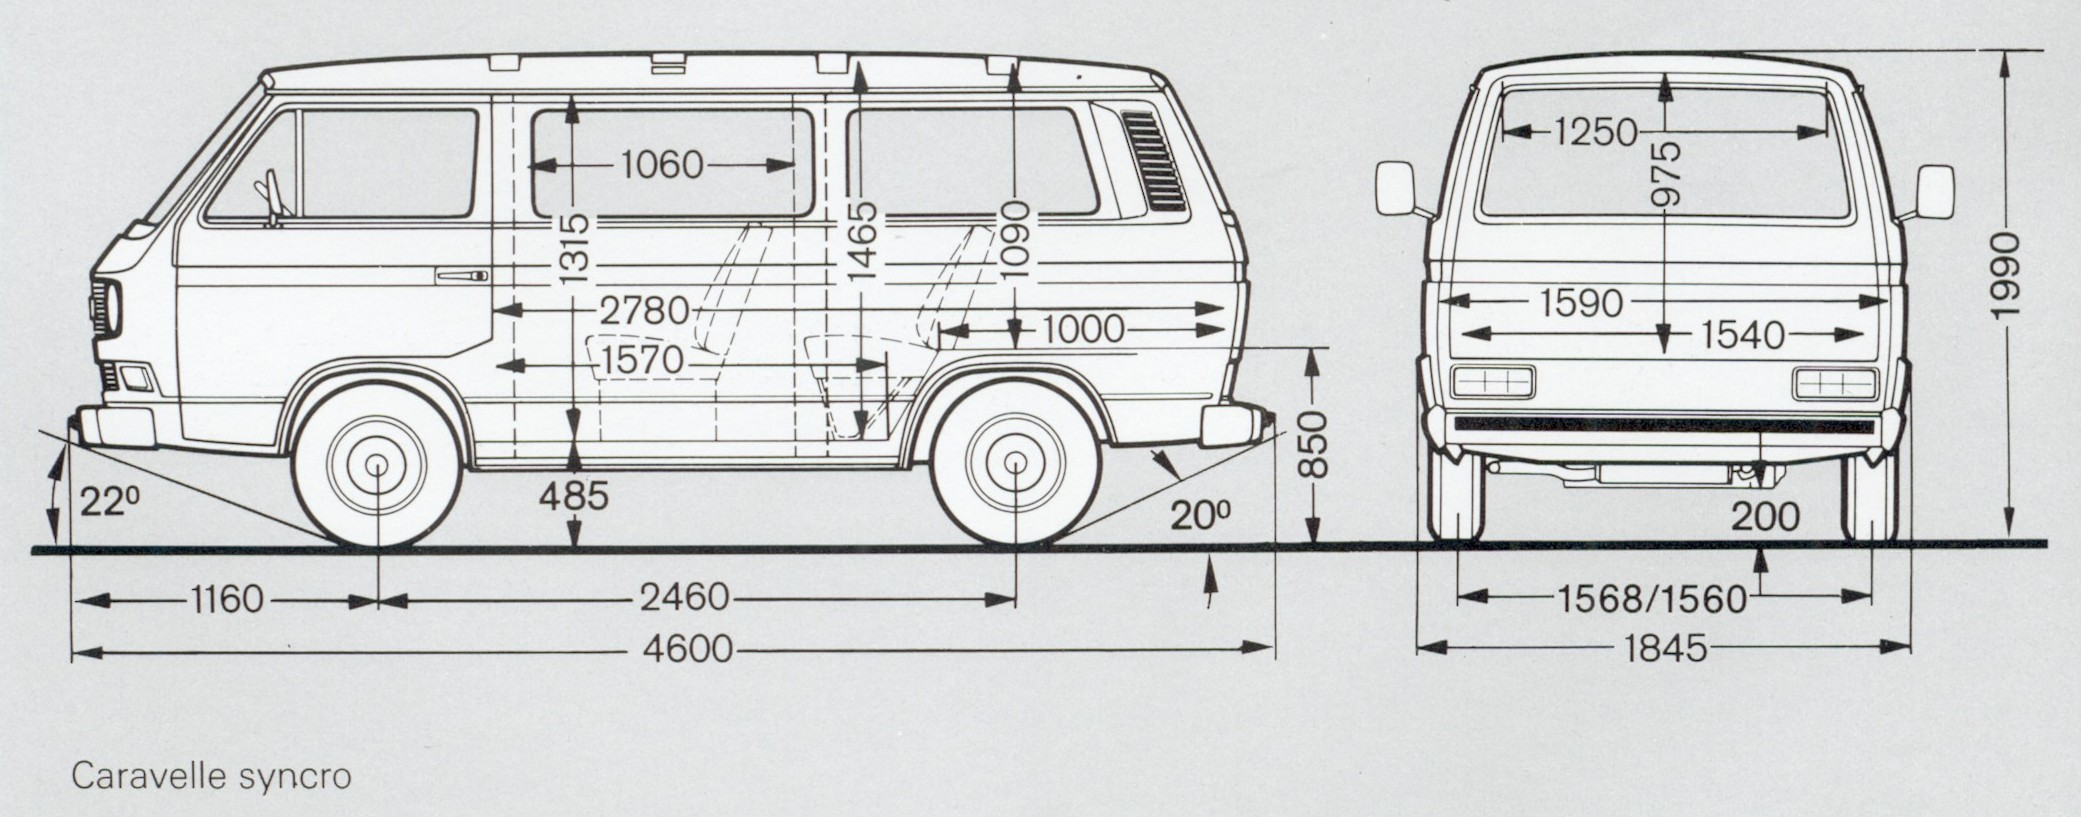 Light Bulbs Flat Line Icons Led 632016899 in addition Truck Turning Radius Template together with Spring measurement furthermore Volkswagen Touran Dimensions 0406 additionally Circuit de Silverstone. on car dimensions comparison